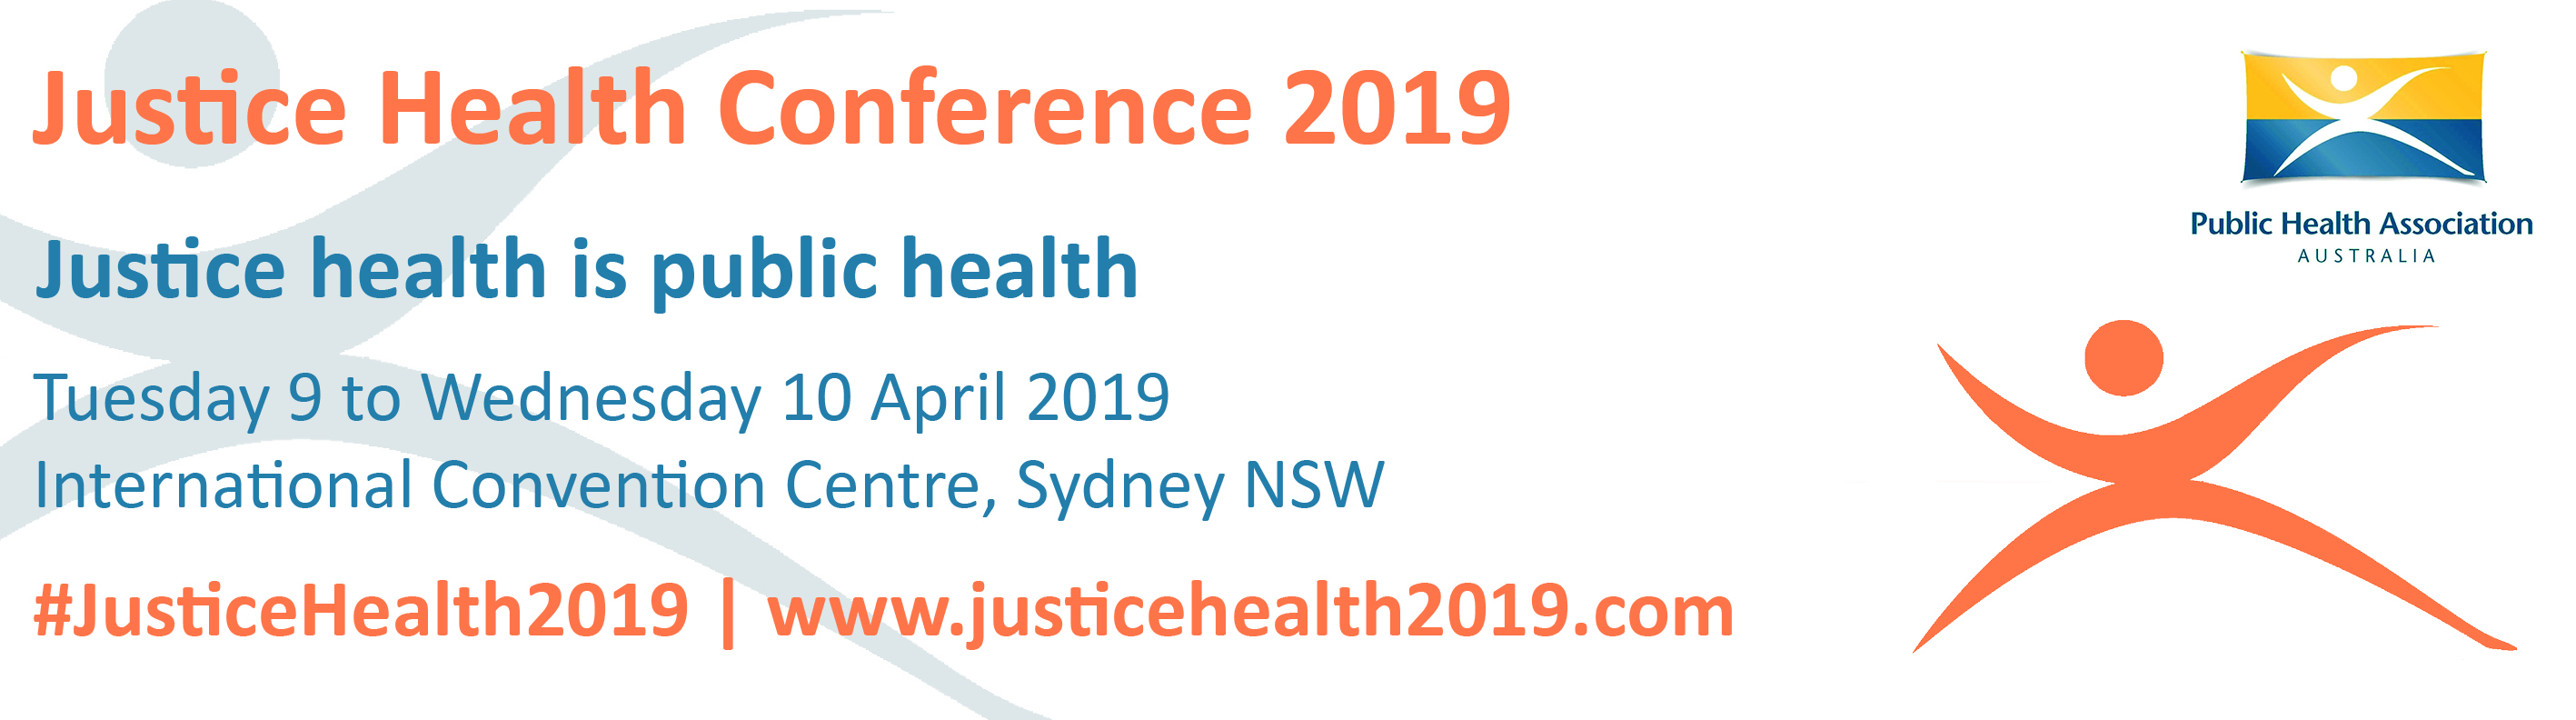 Justice Health Conference 2019 - Public Health Association of